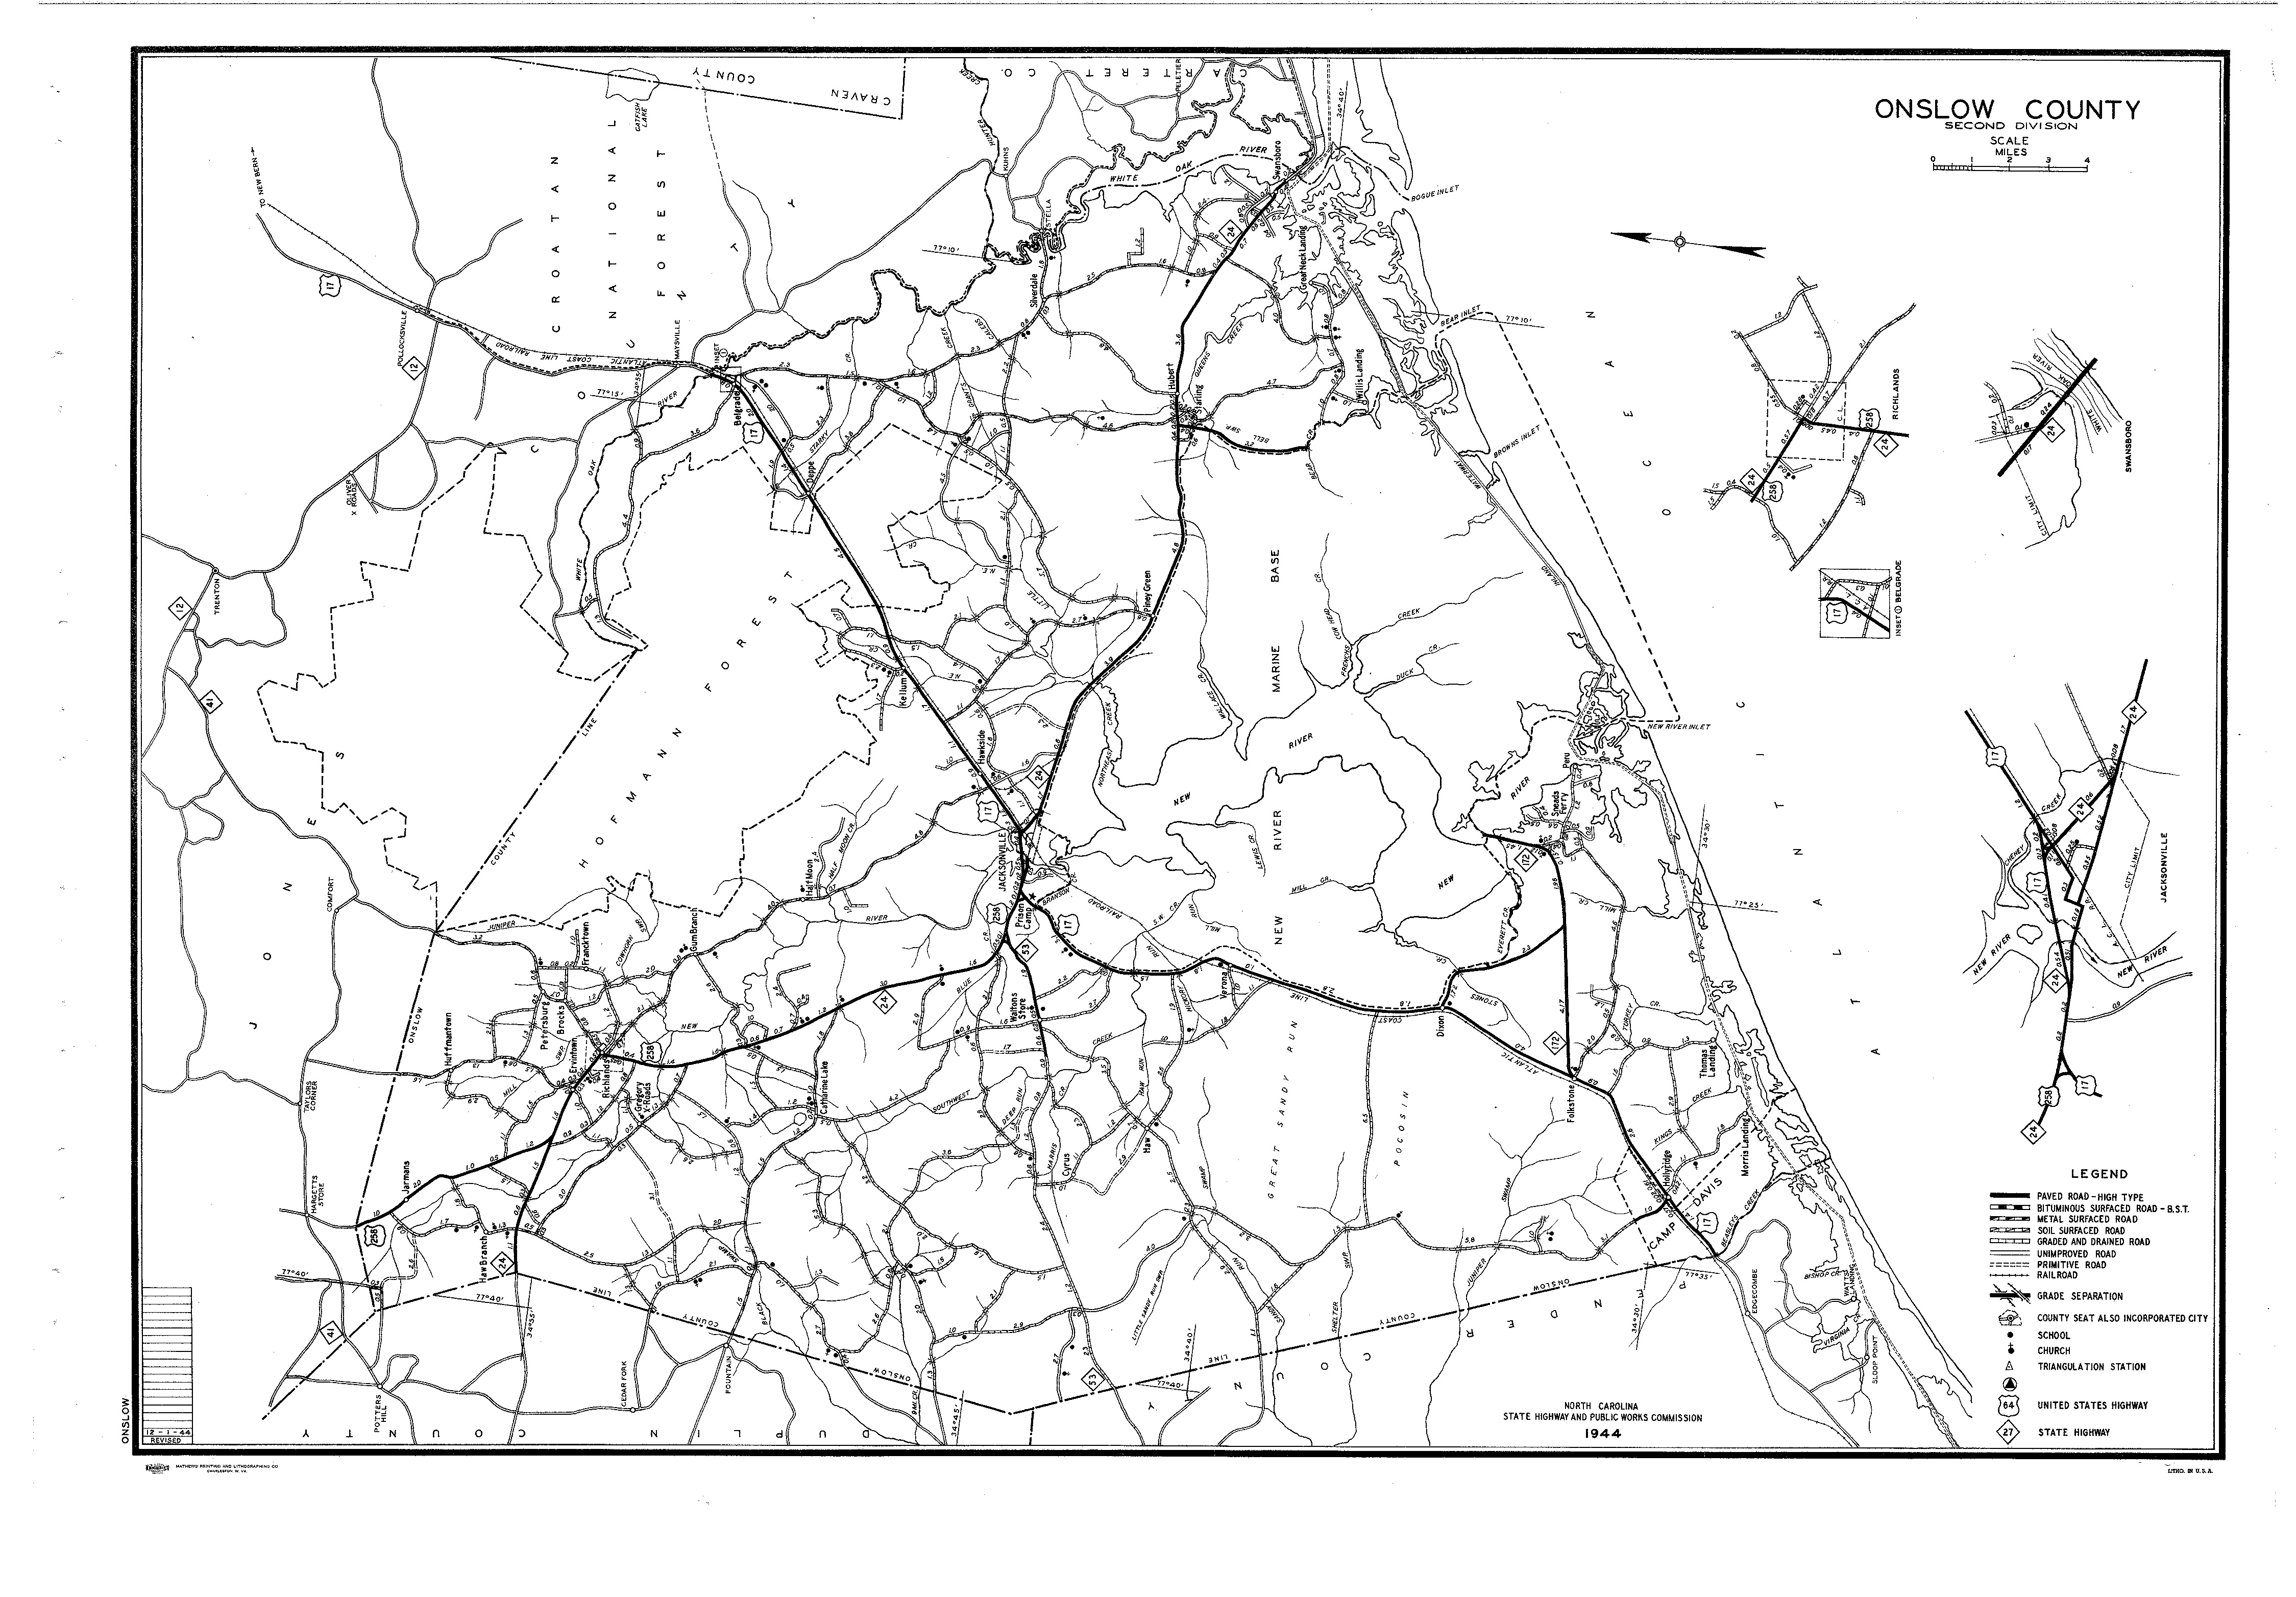 Onslow County Maps - County maps